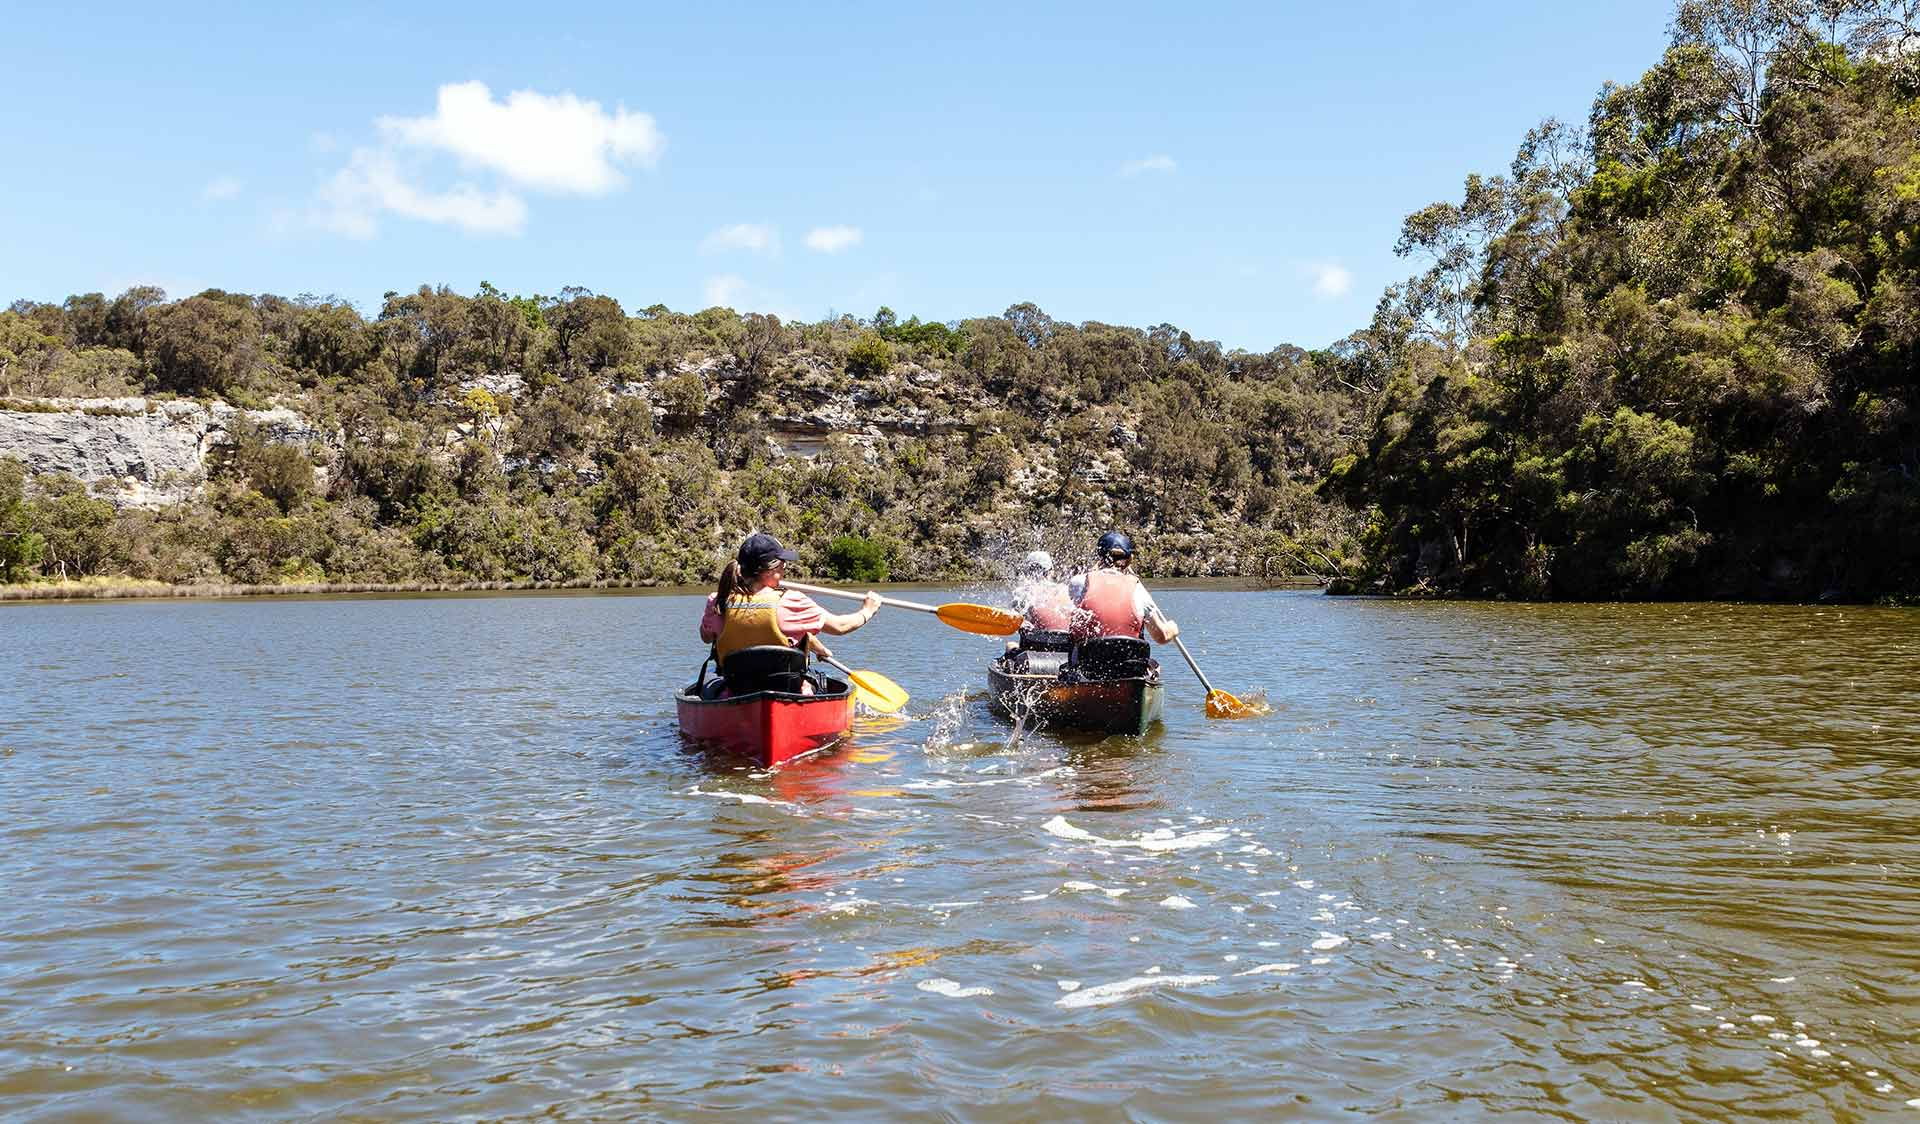 A woman playfully splashing a friend in another canoe with her paddle on the Glenelg River